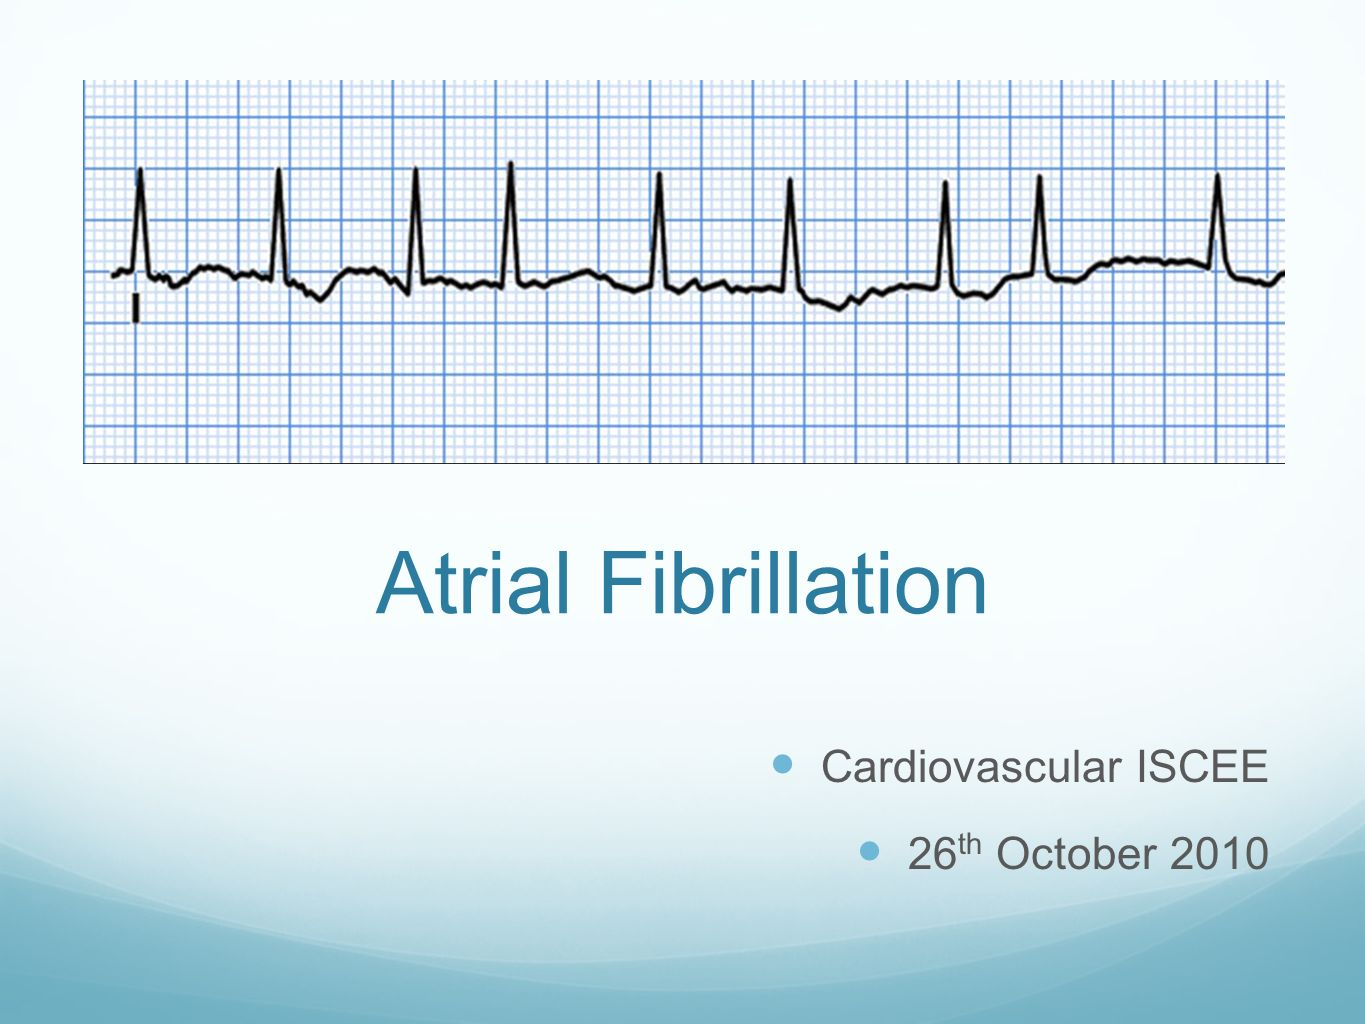 Atrial Fibrillation Cardiovascular ISCEE 26th October 2010